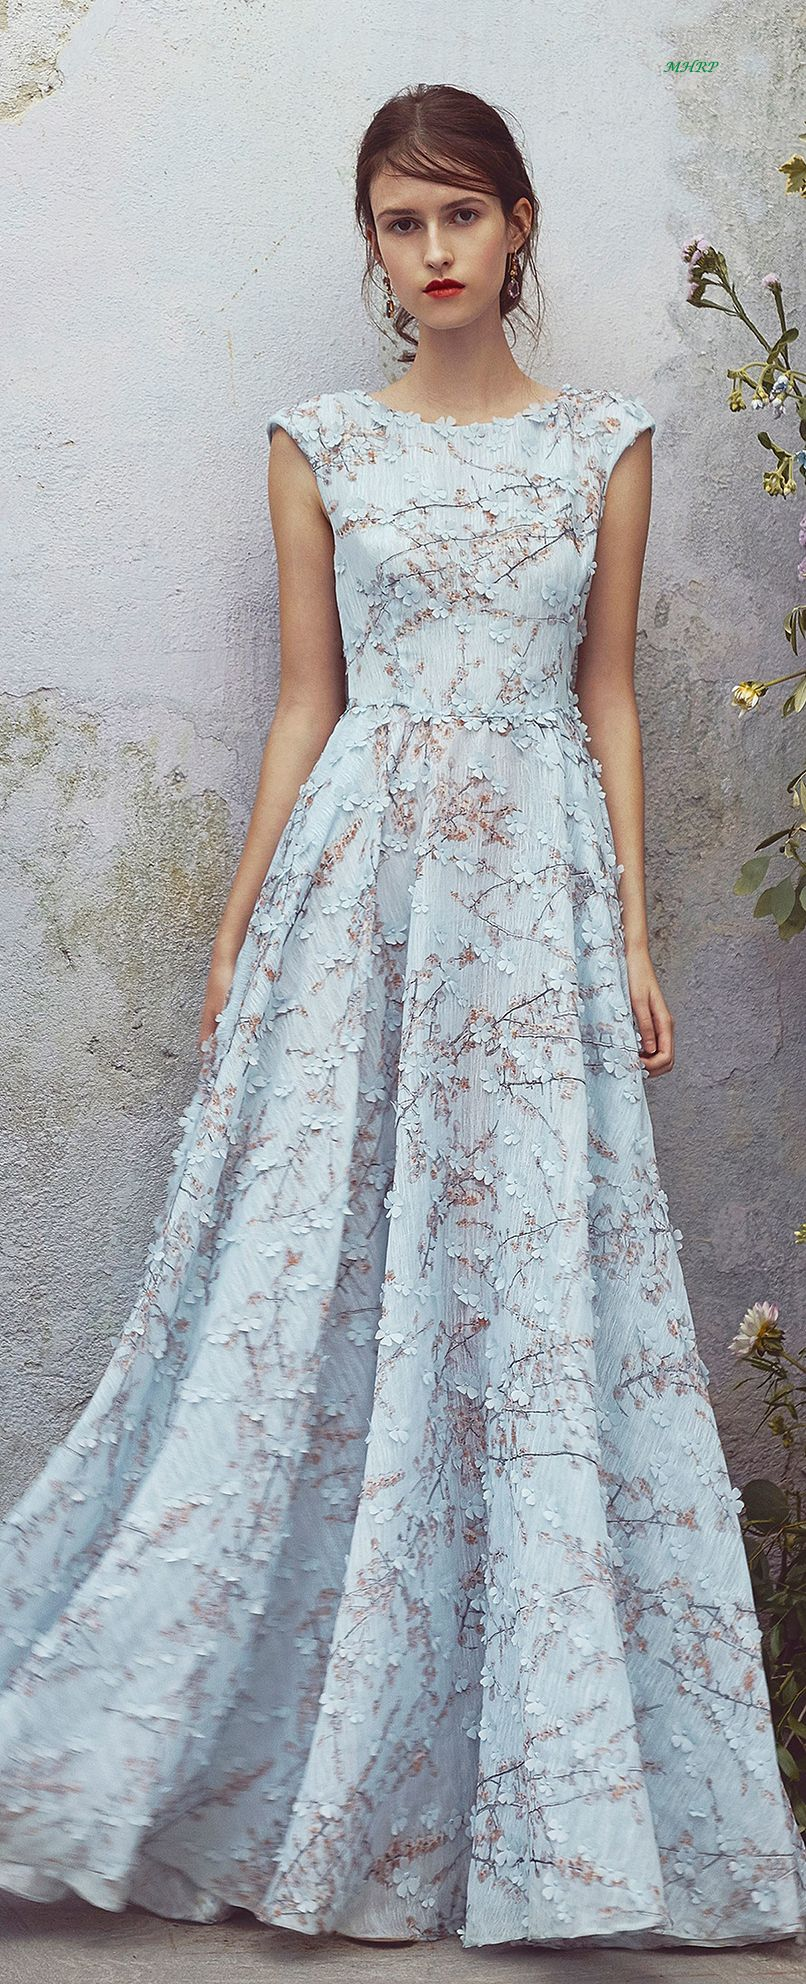 9 BALL GOWN WEDDING DRESSES YOU ARE SURE TO LOVE | Resorts, Gowns ...